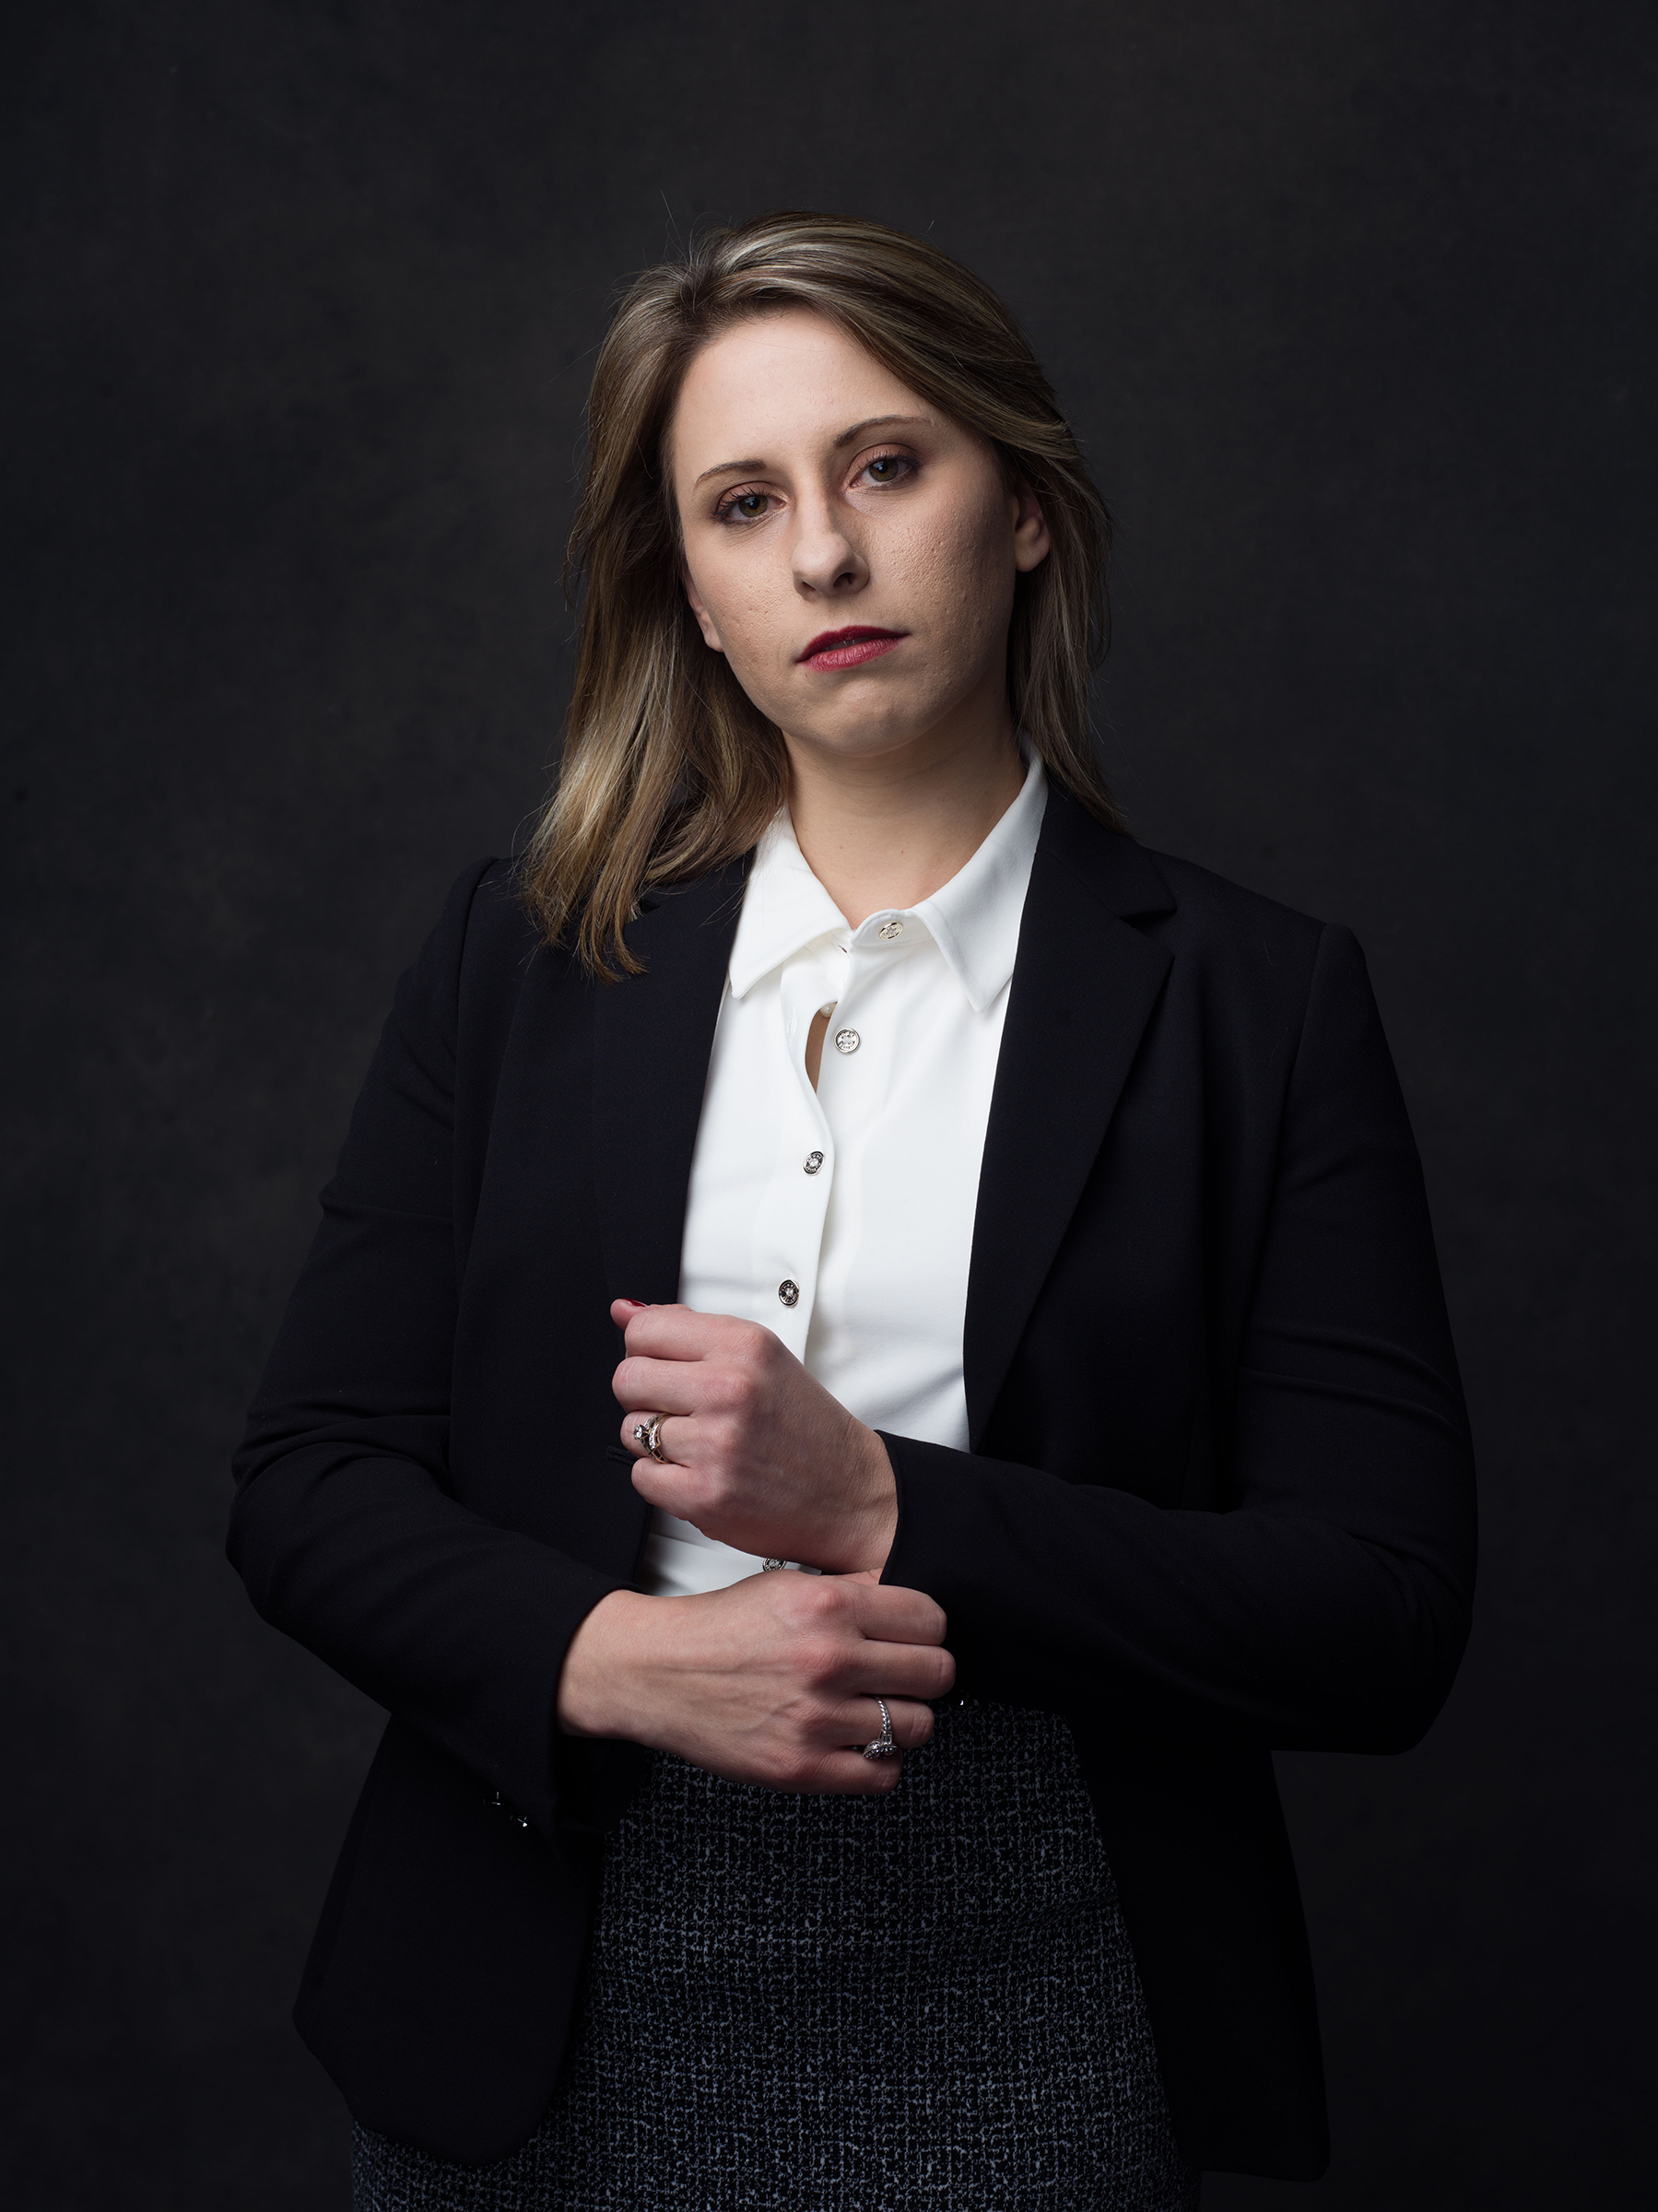 Rep. Katie Hill (D-C​alif.), photographed in Washington D.C., on ​Jan. 2, 2019.